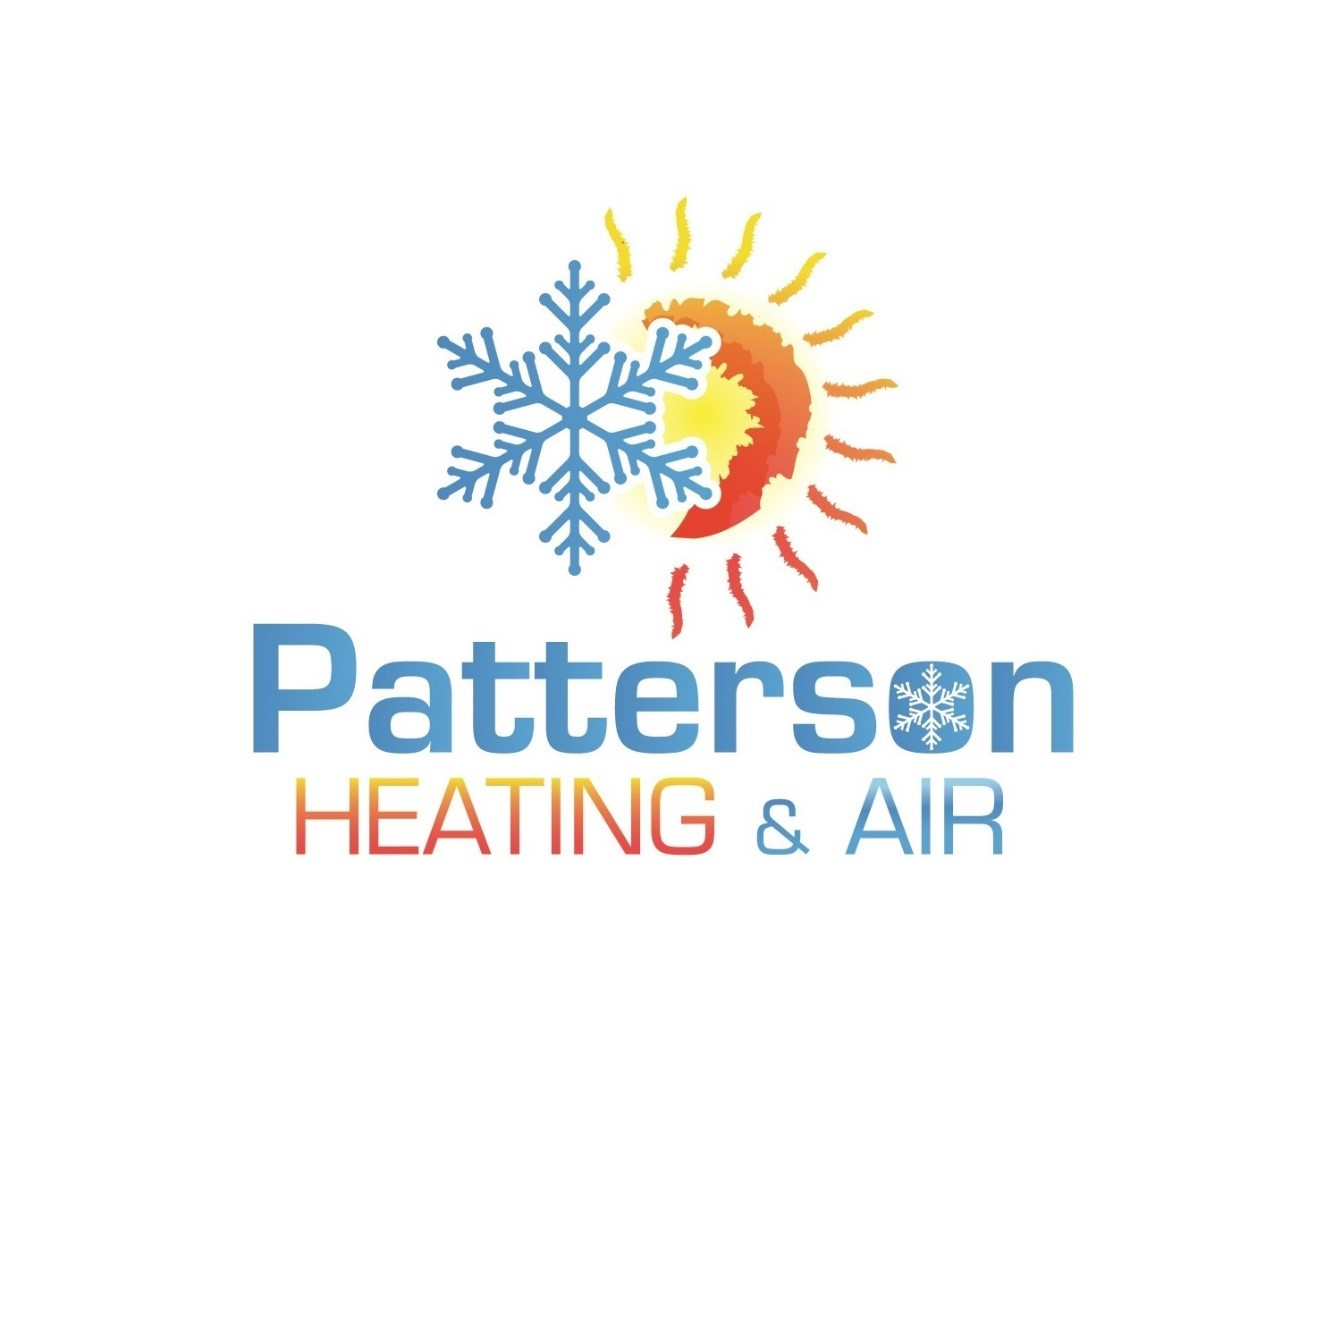 Patterson Heating Air 2992 Cruse Rd Lawrenceville Ga